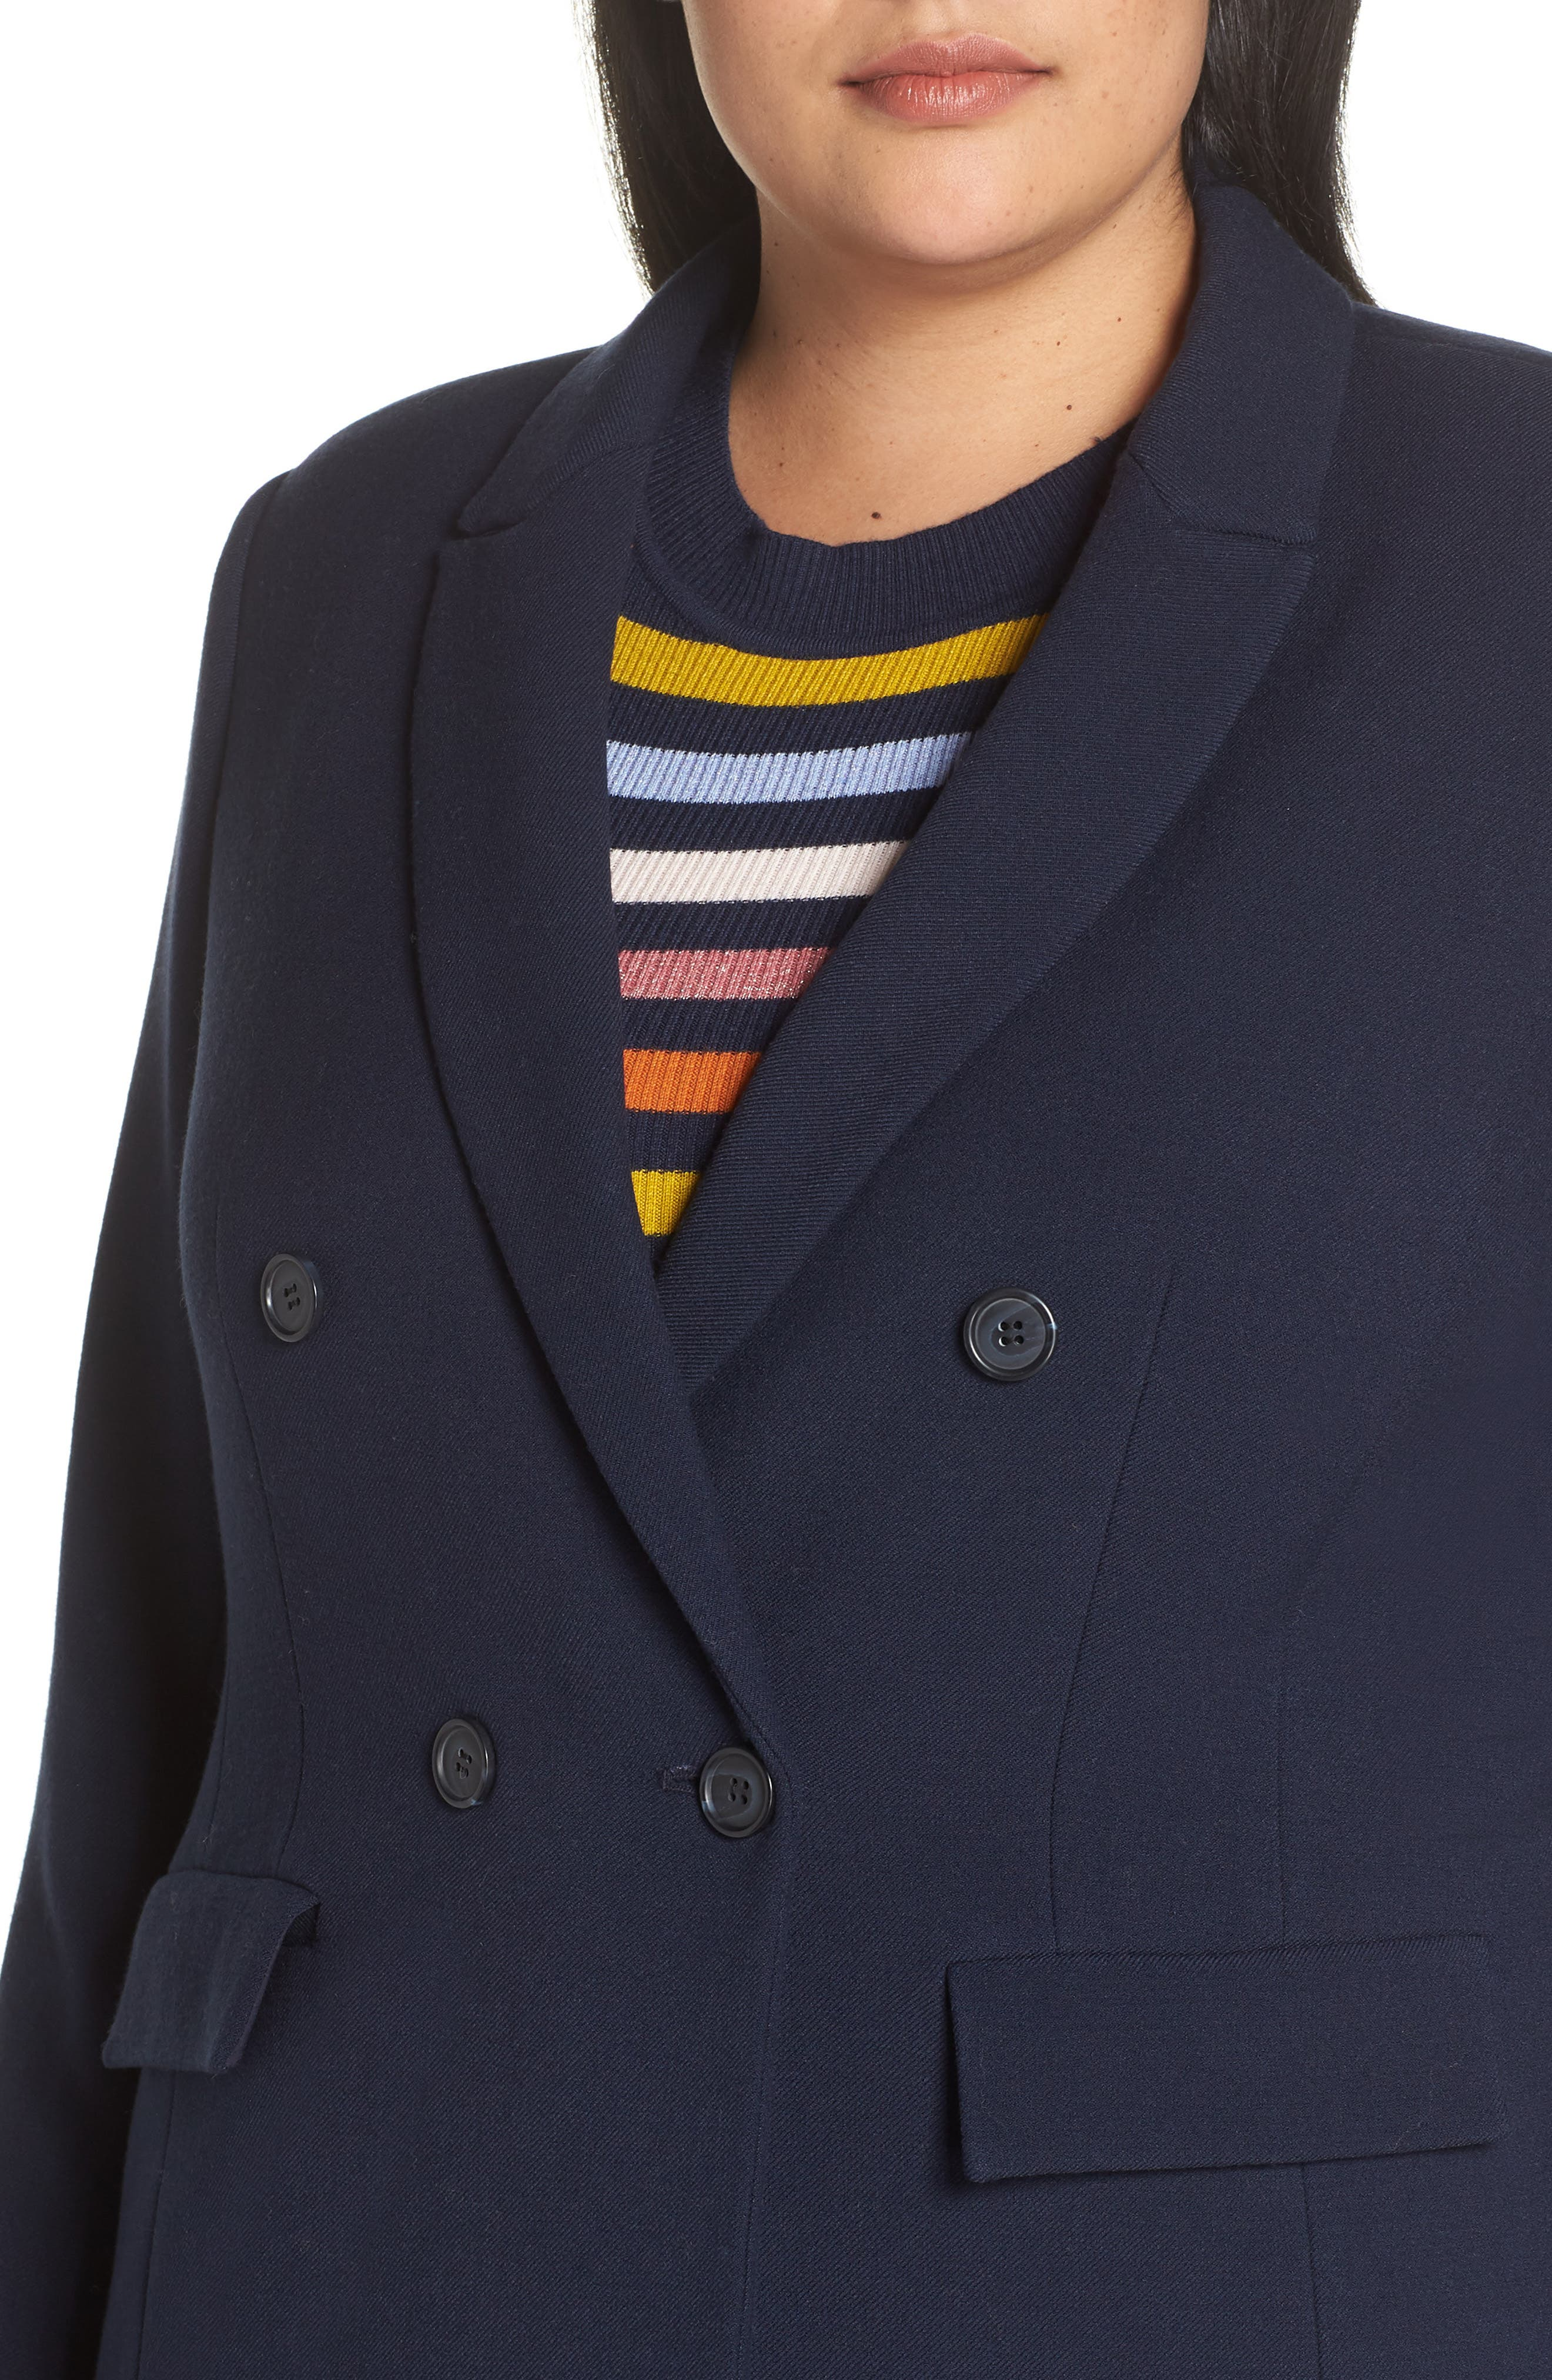 x Atlantic-Pacific Menswear Double Breasted Blazer,                             Alternate thumbnail 4, color,                             NAVY